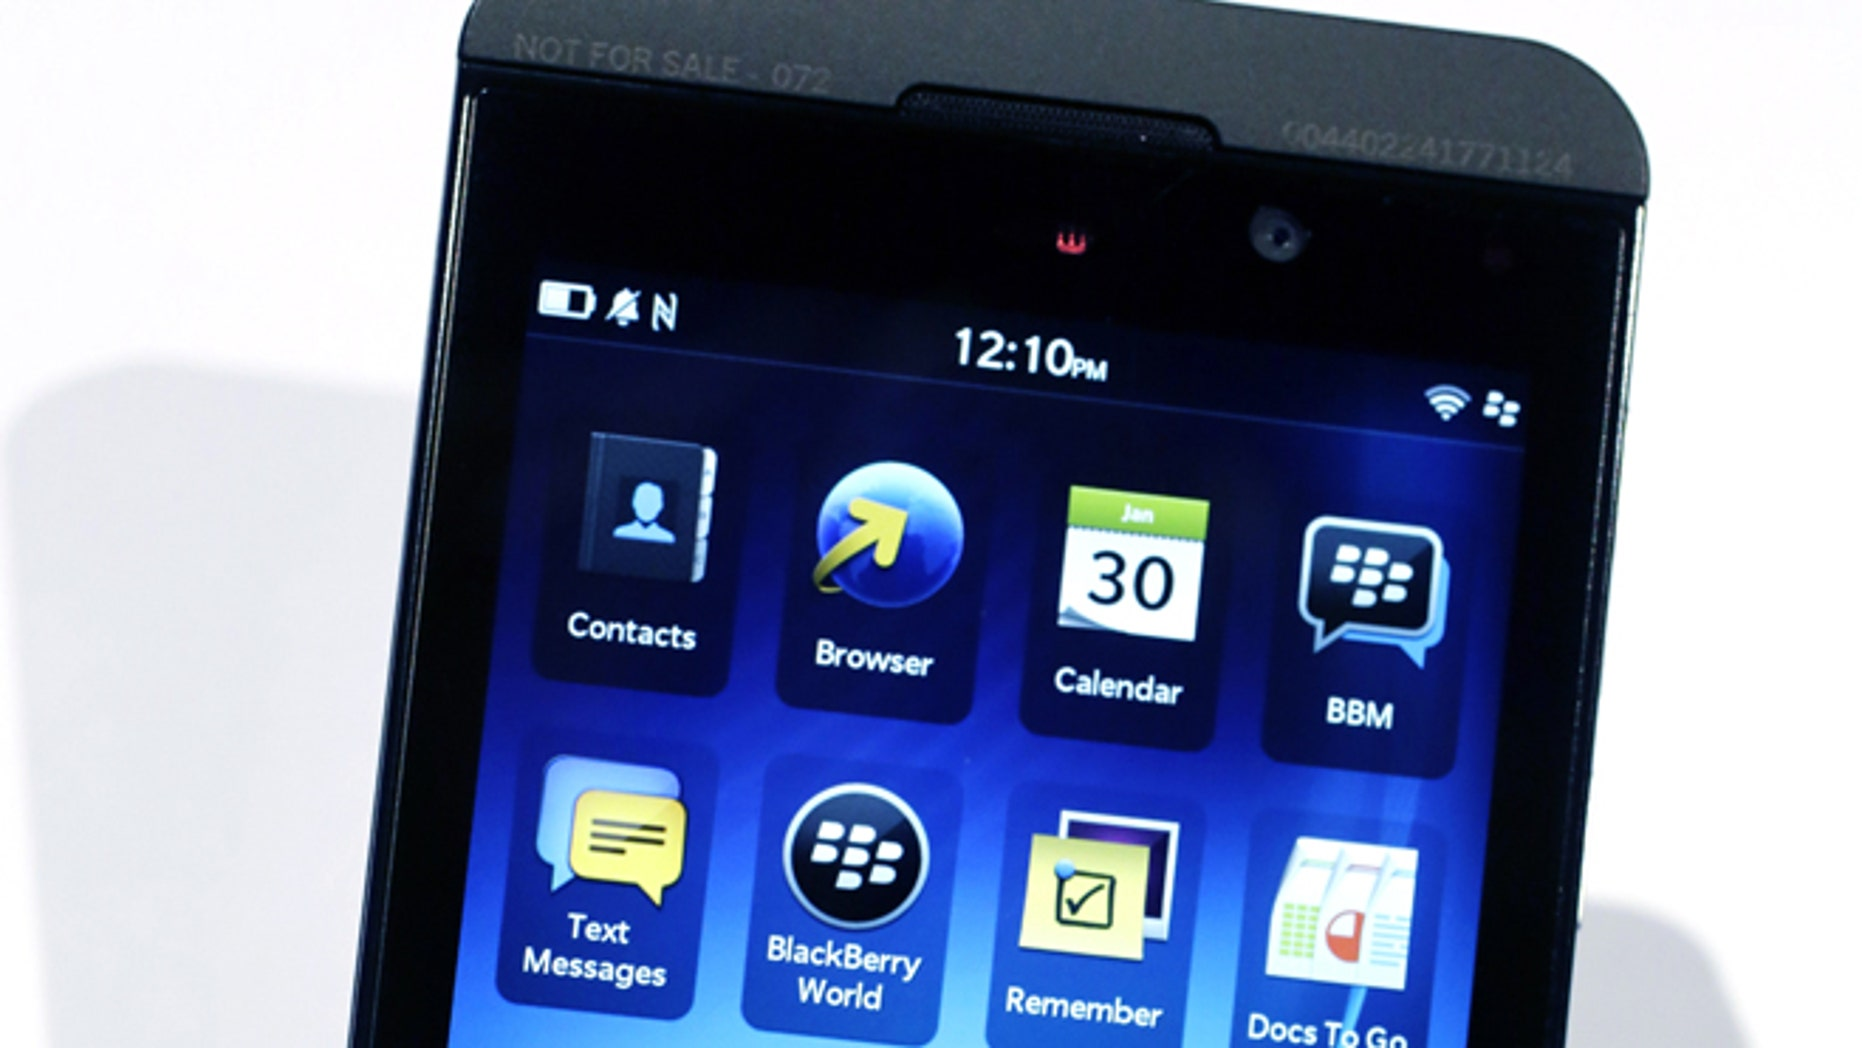 The new touchscreen BlackBerry Z10 smartphone, which the company hoped would mark a turnaround in its battle against the iPhone and Google's Android.